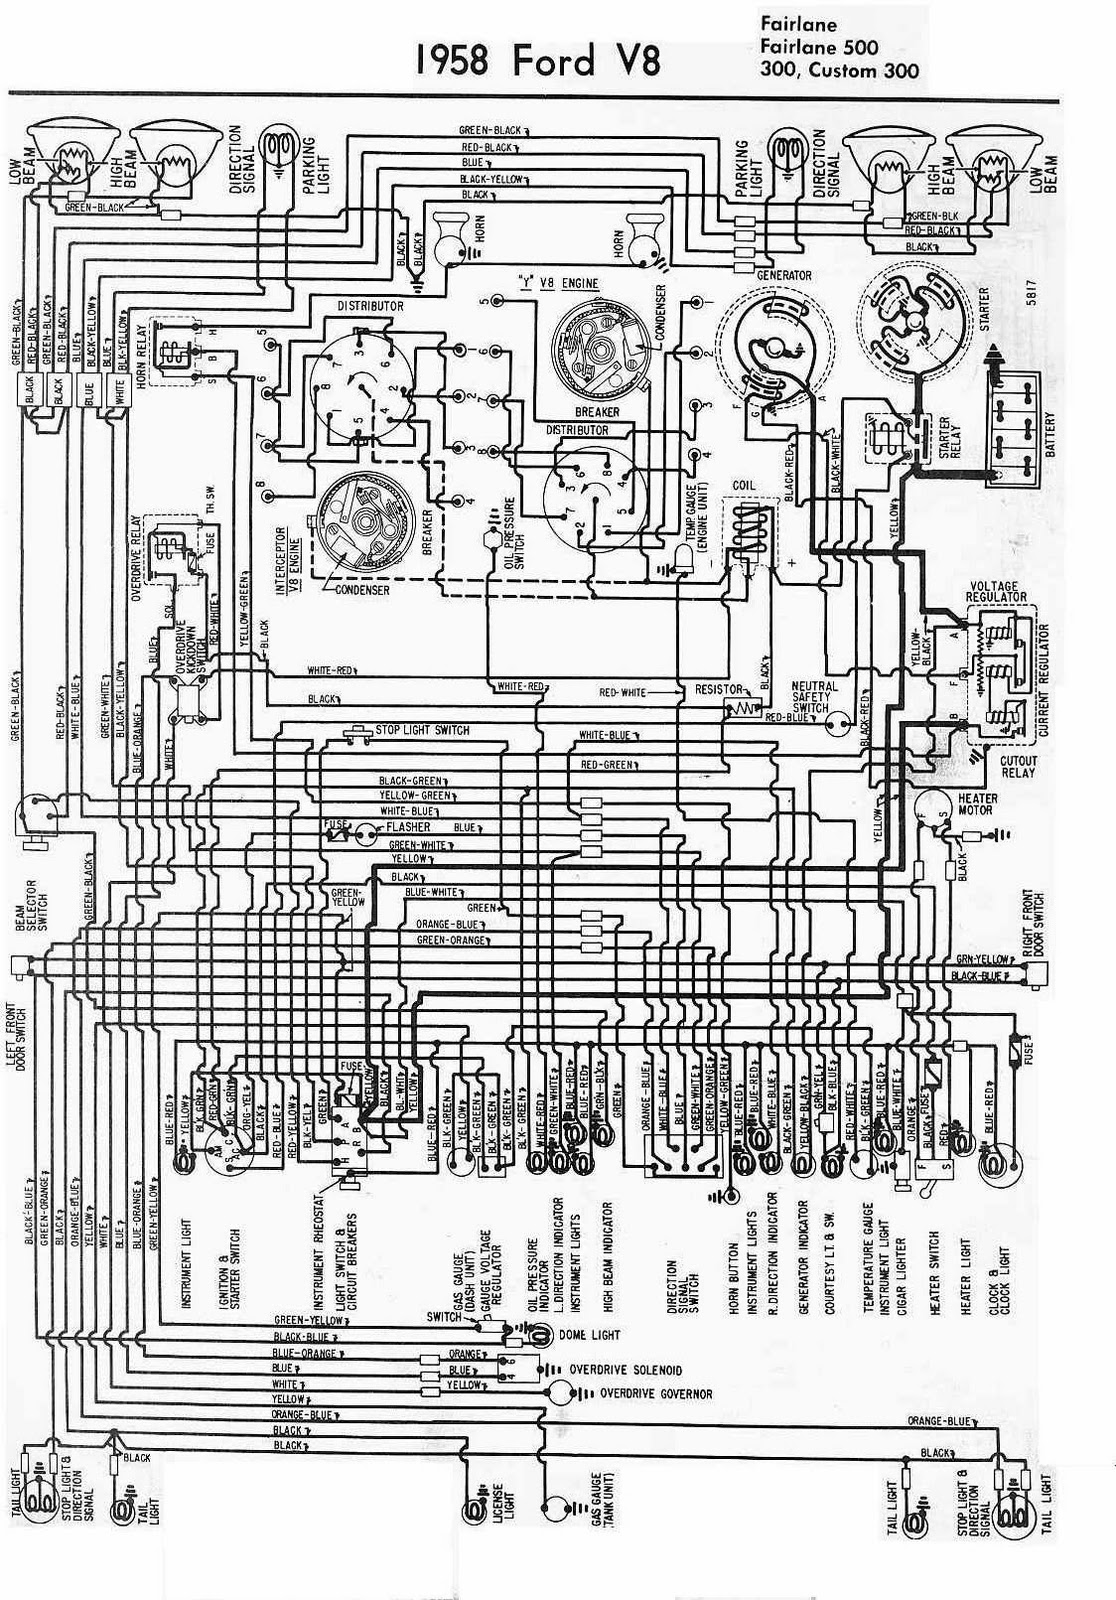 1955 ford ignition wiring house wiring diagram symbols u2022 rh maxturner co ford electronic ignition wiring [ 1116 x 1600 Pixel ]